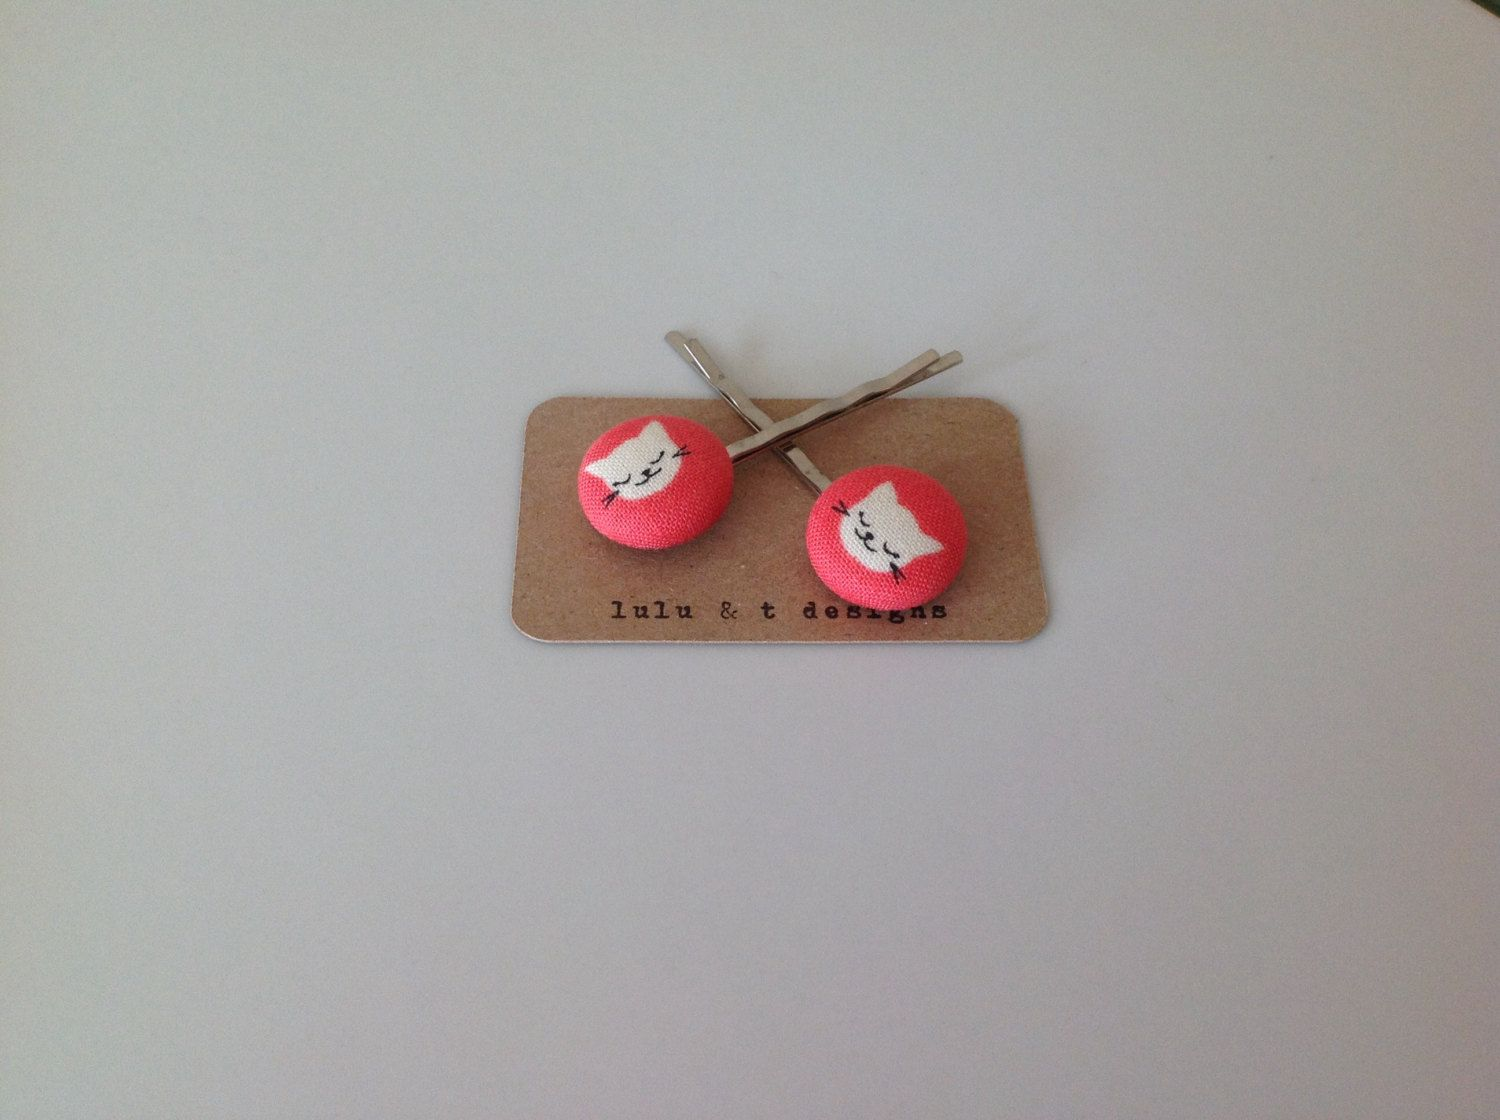 Kitty cat fabric covered button bobby pin pair by Luluandt on Etsy